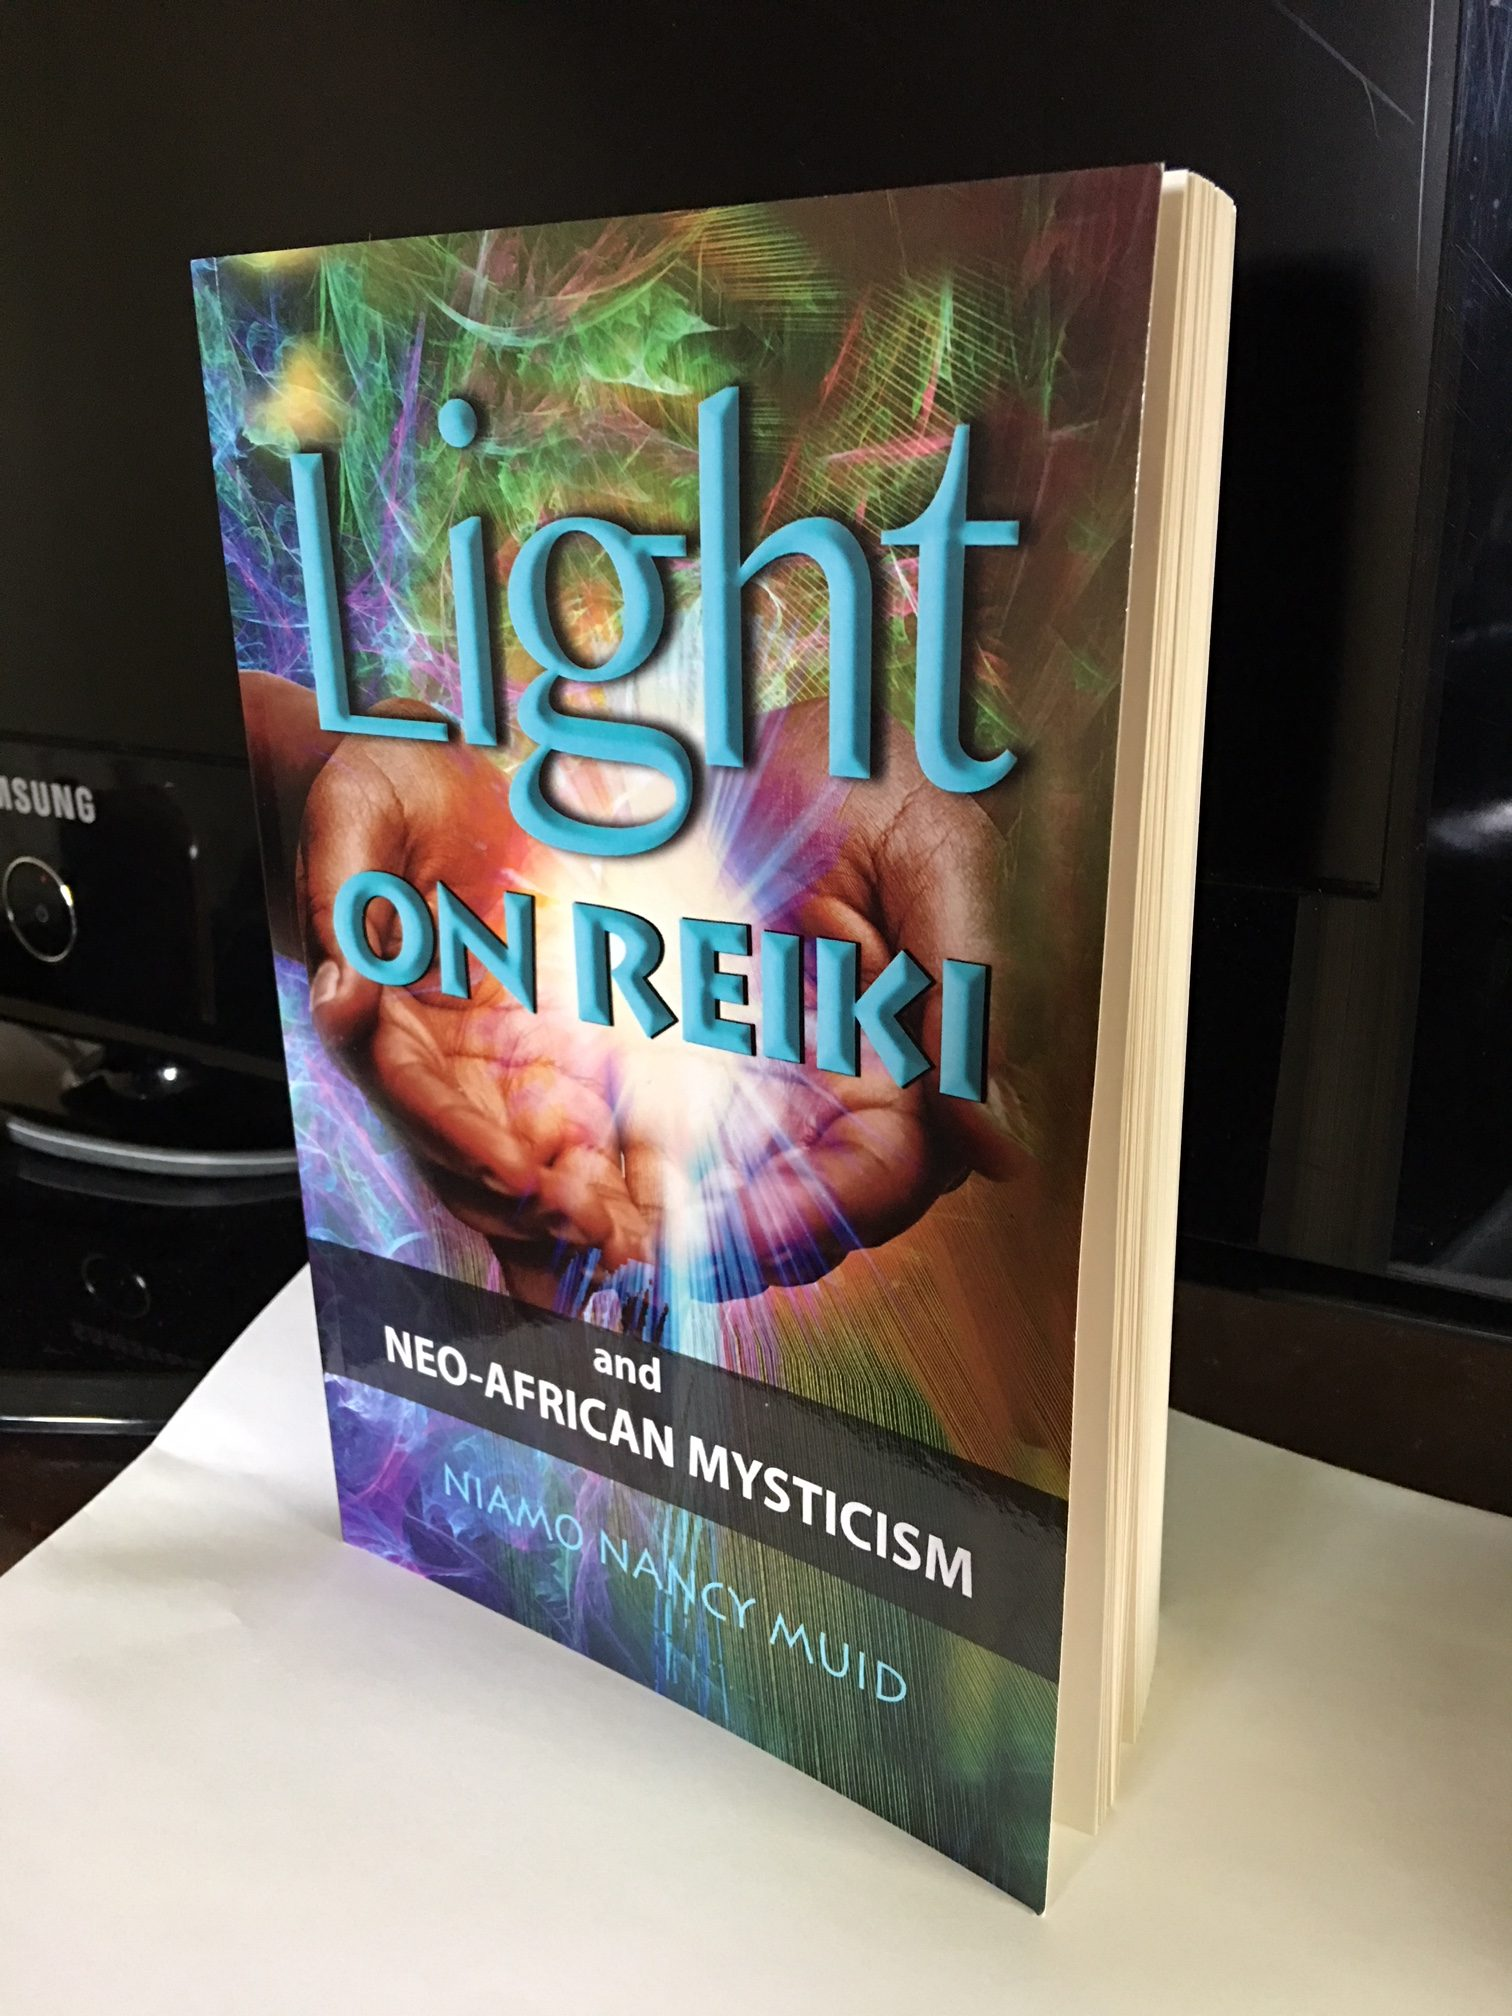 pic of my book on reiki healing